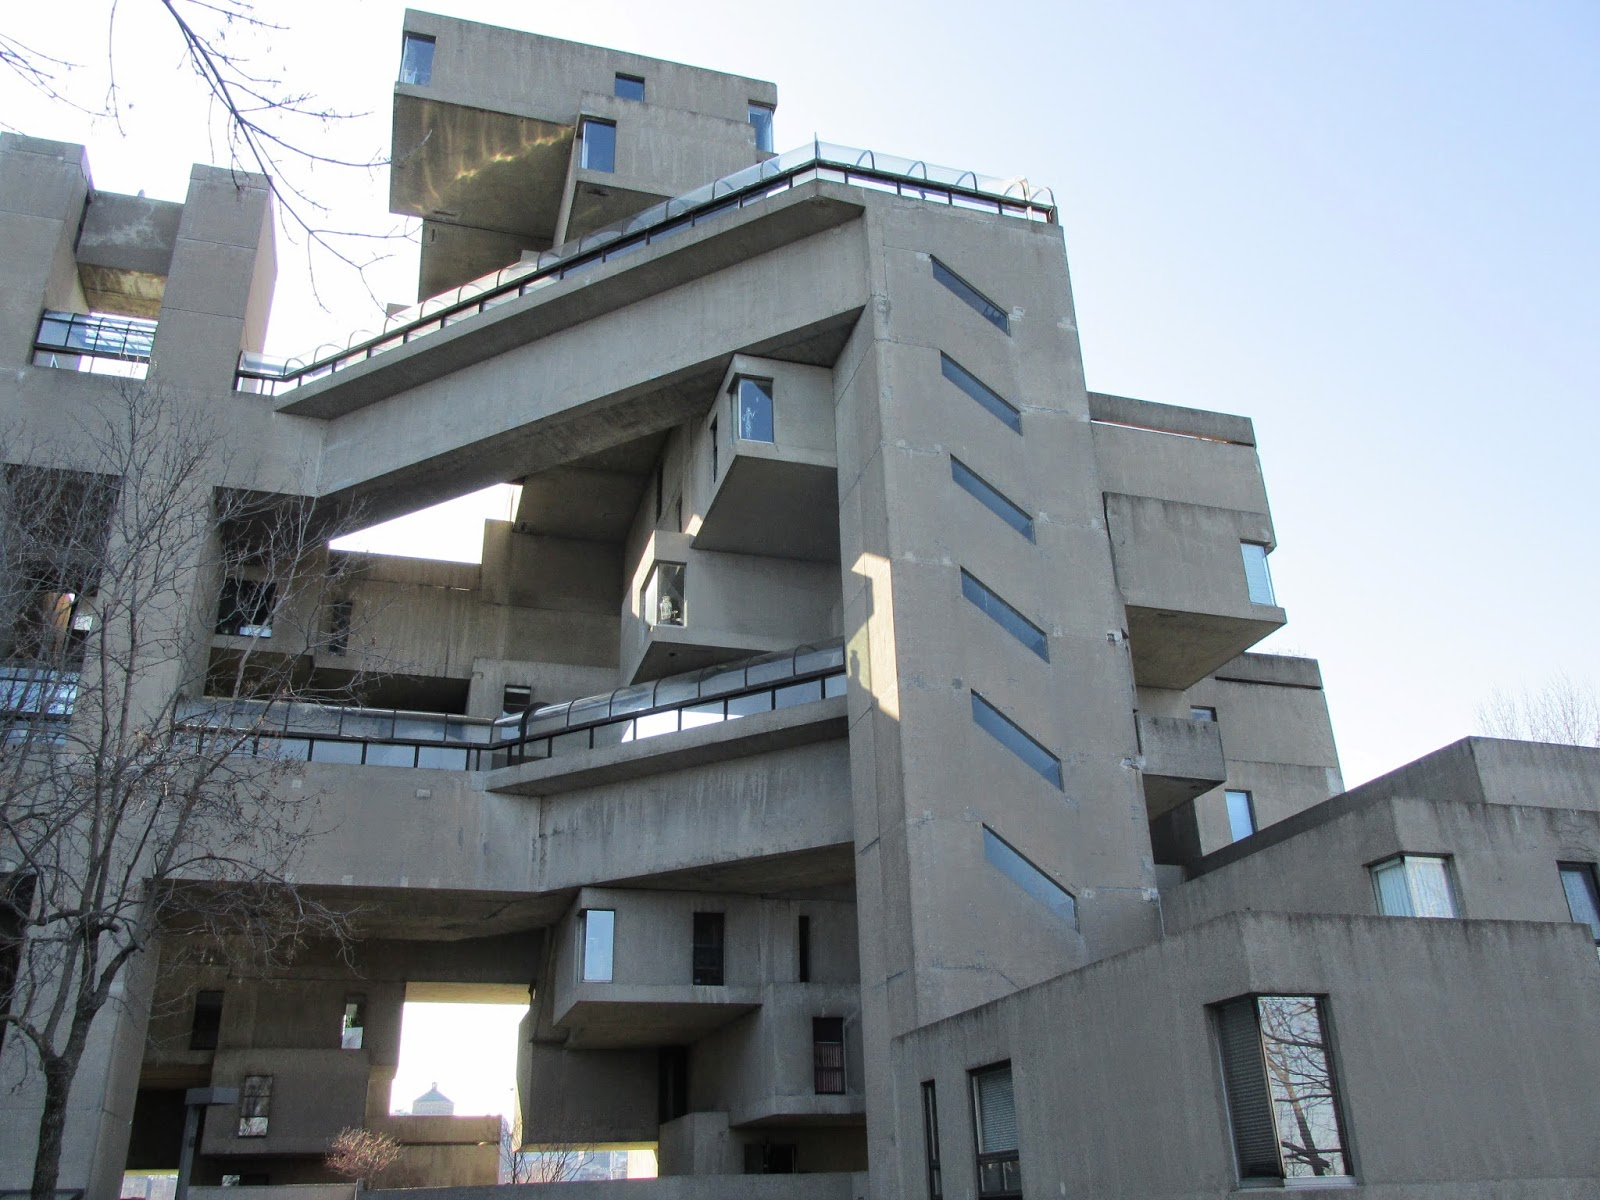 Habitat 67 a brutalist dream come true kaleidoscope flux for Habitat 67 architecture